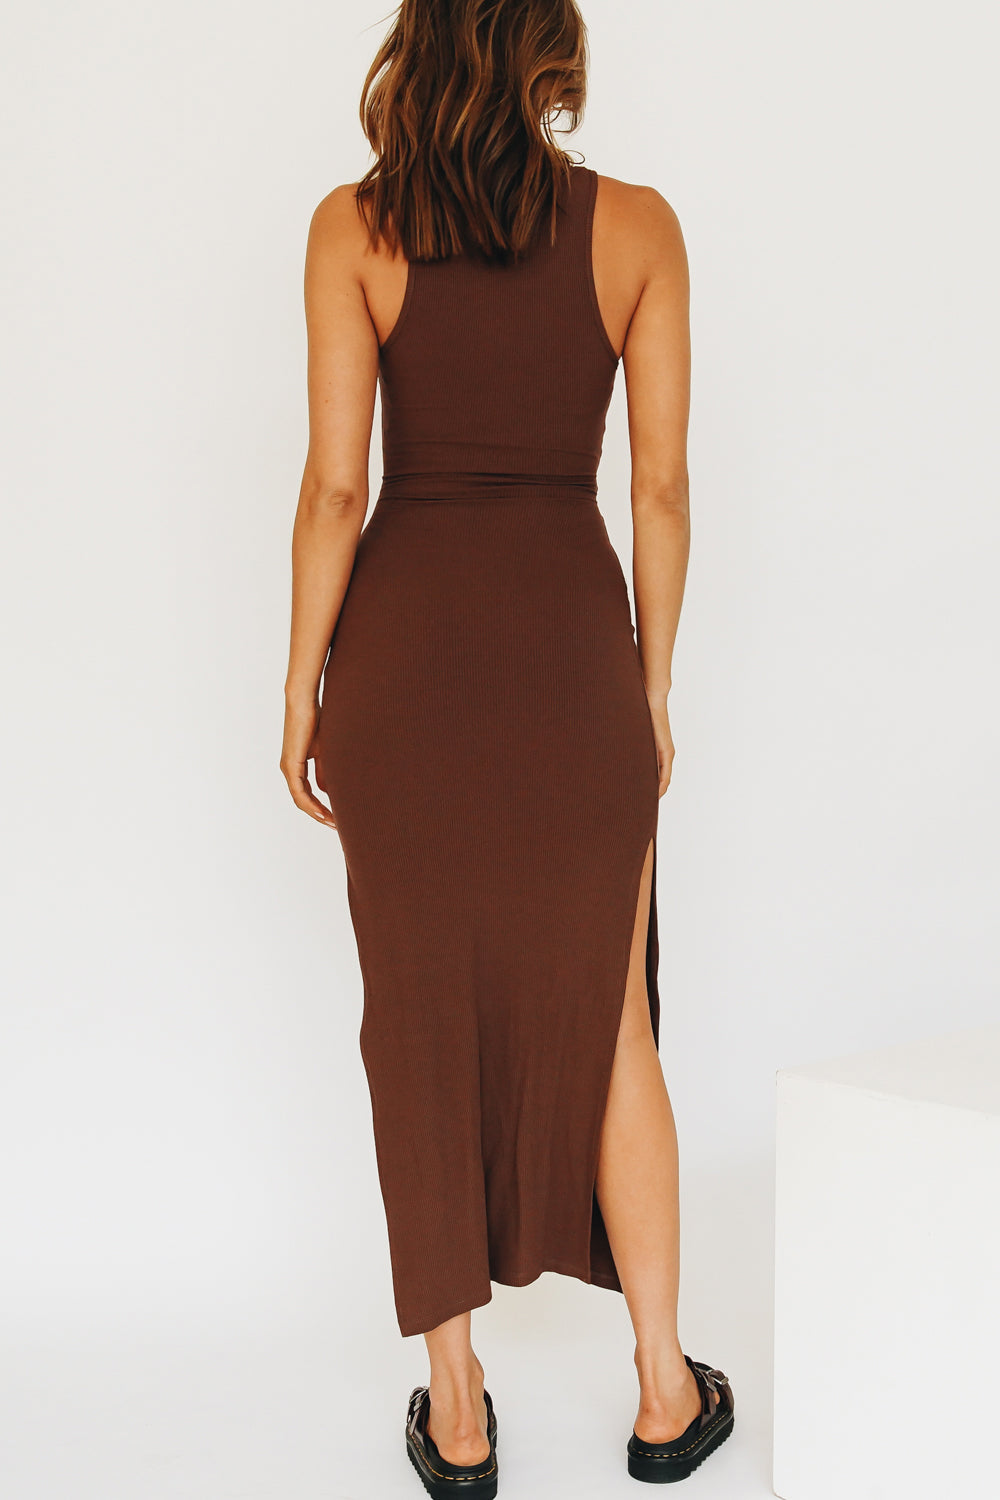 Iconic Moment Ribbed Midi Dress // Chocolate